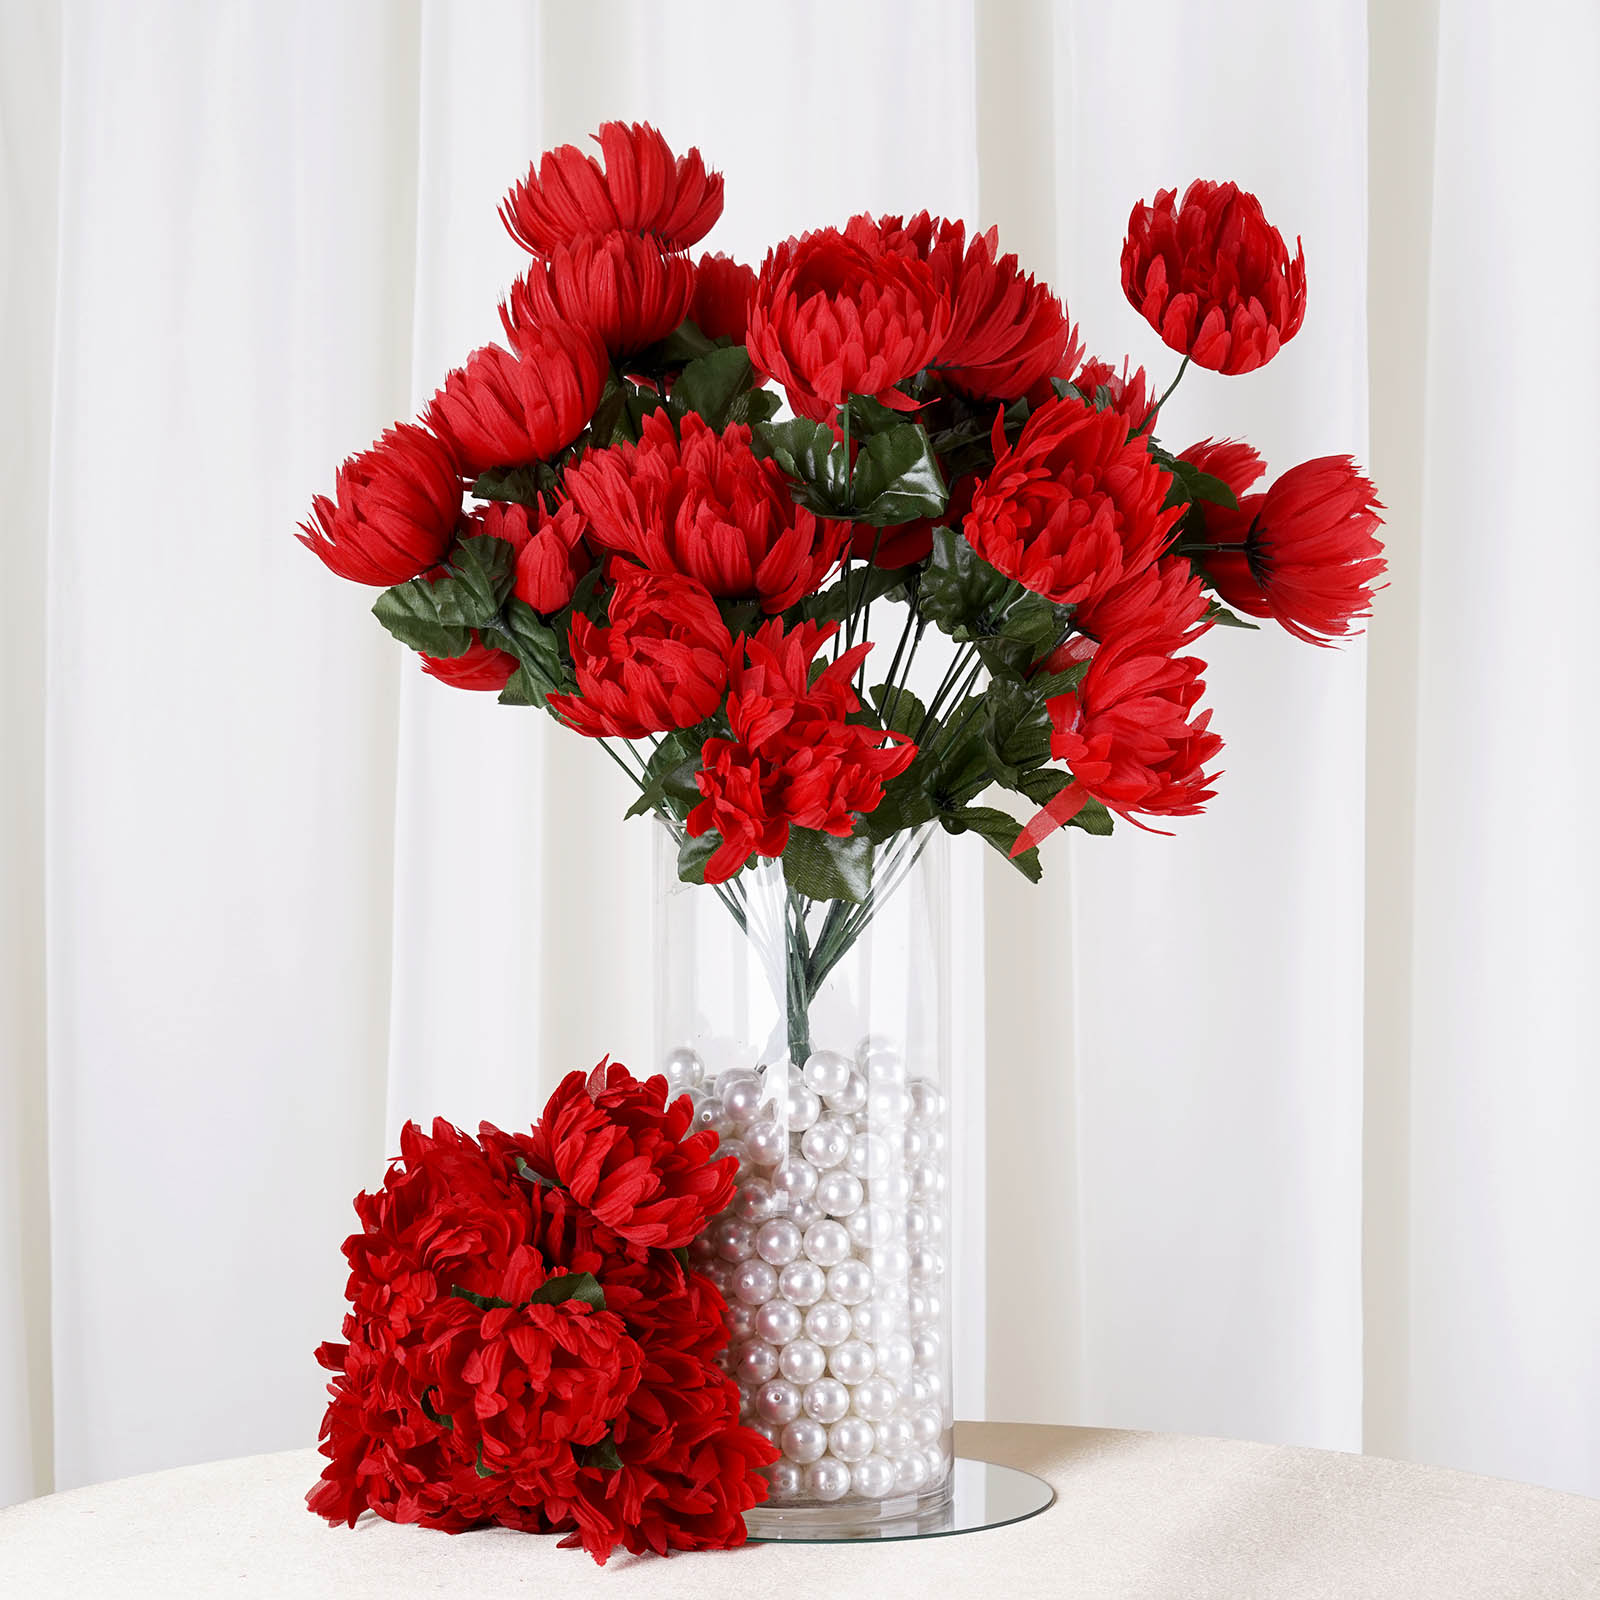 56 CHRYSANTHEMUMS Flowers Wedding Bouquet Party Centerpieces ...